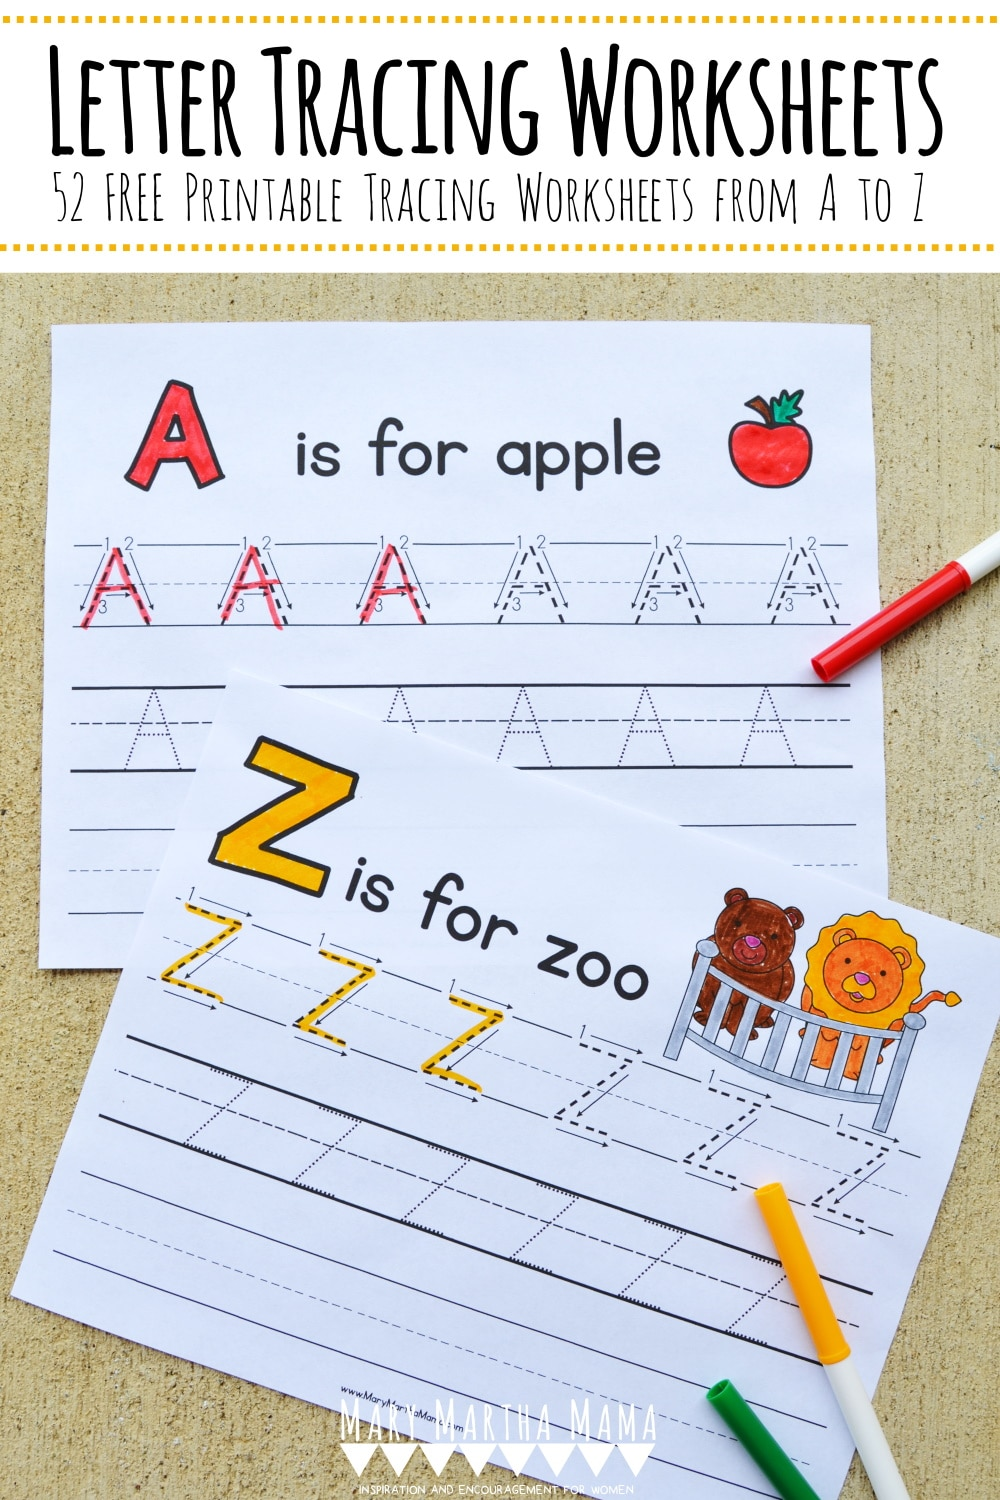 Practice letter formation with your child with this FREE Printable Letter Tracing Packet! #fhdhomeschoolers #freehomeschooldeals #lettertracing #handwriting #hsmoms